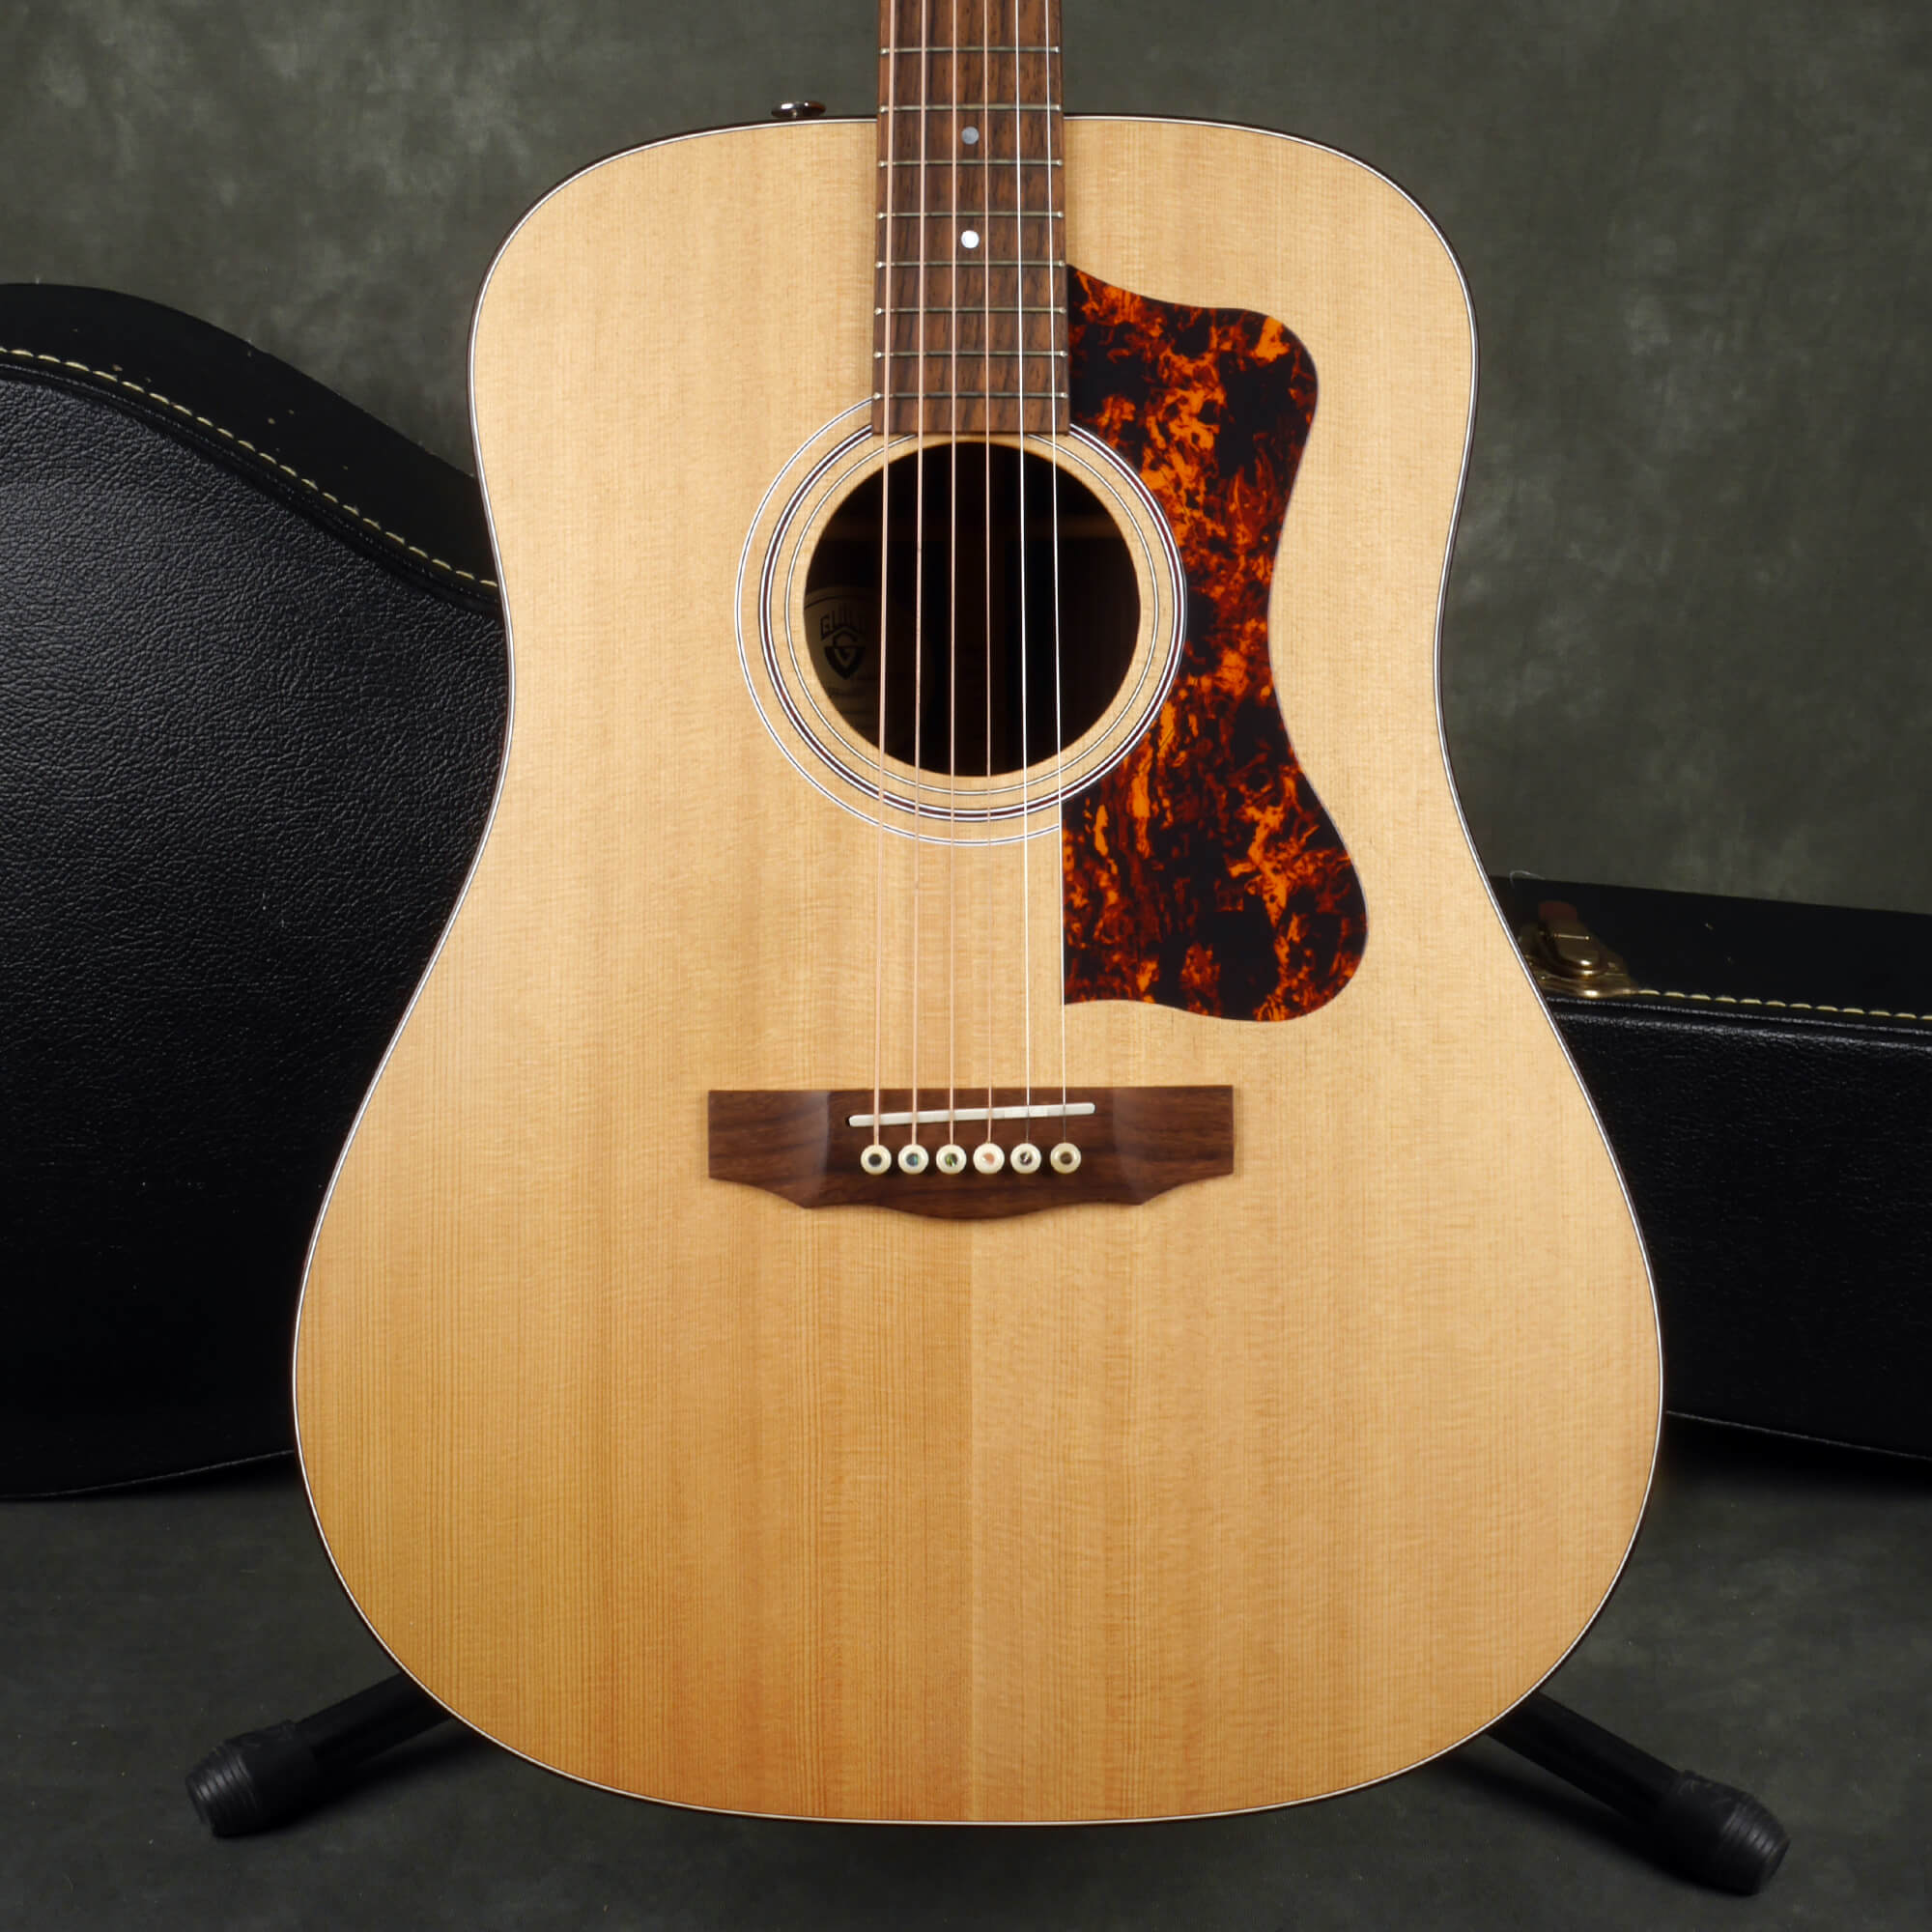 Guild DV6 Acoustic Guitar - Natural w/Hard Case - 2nd Hand